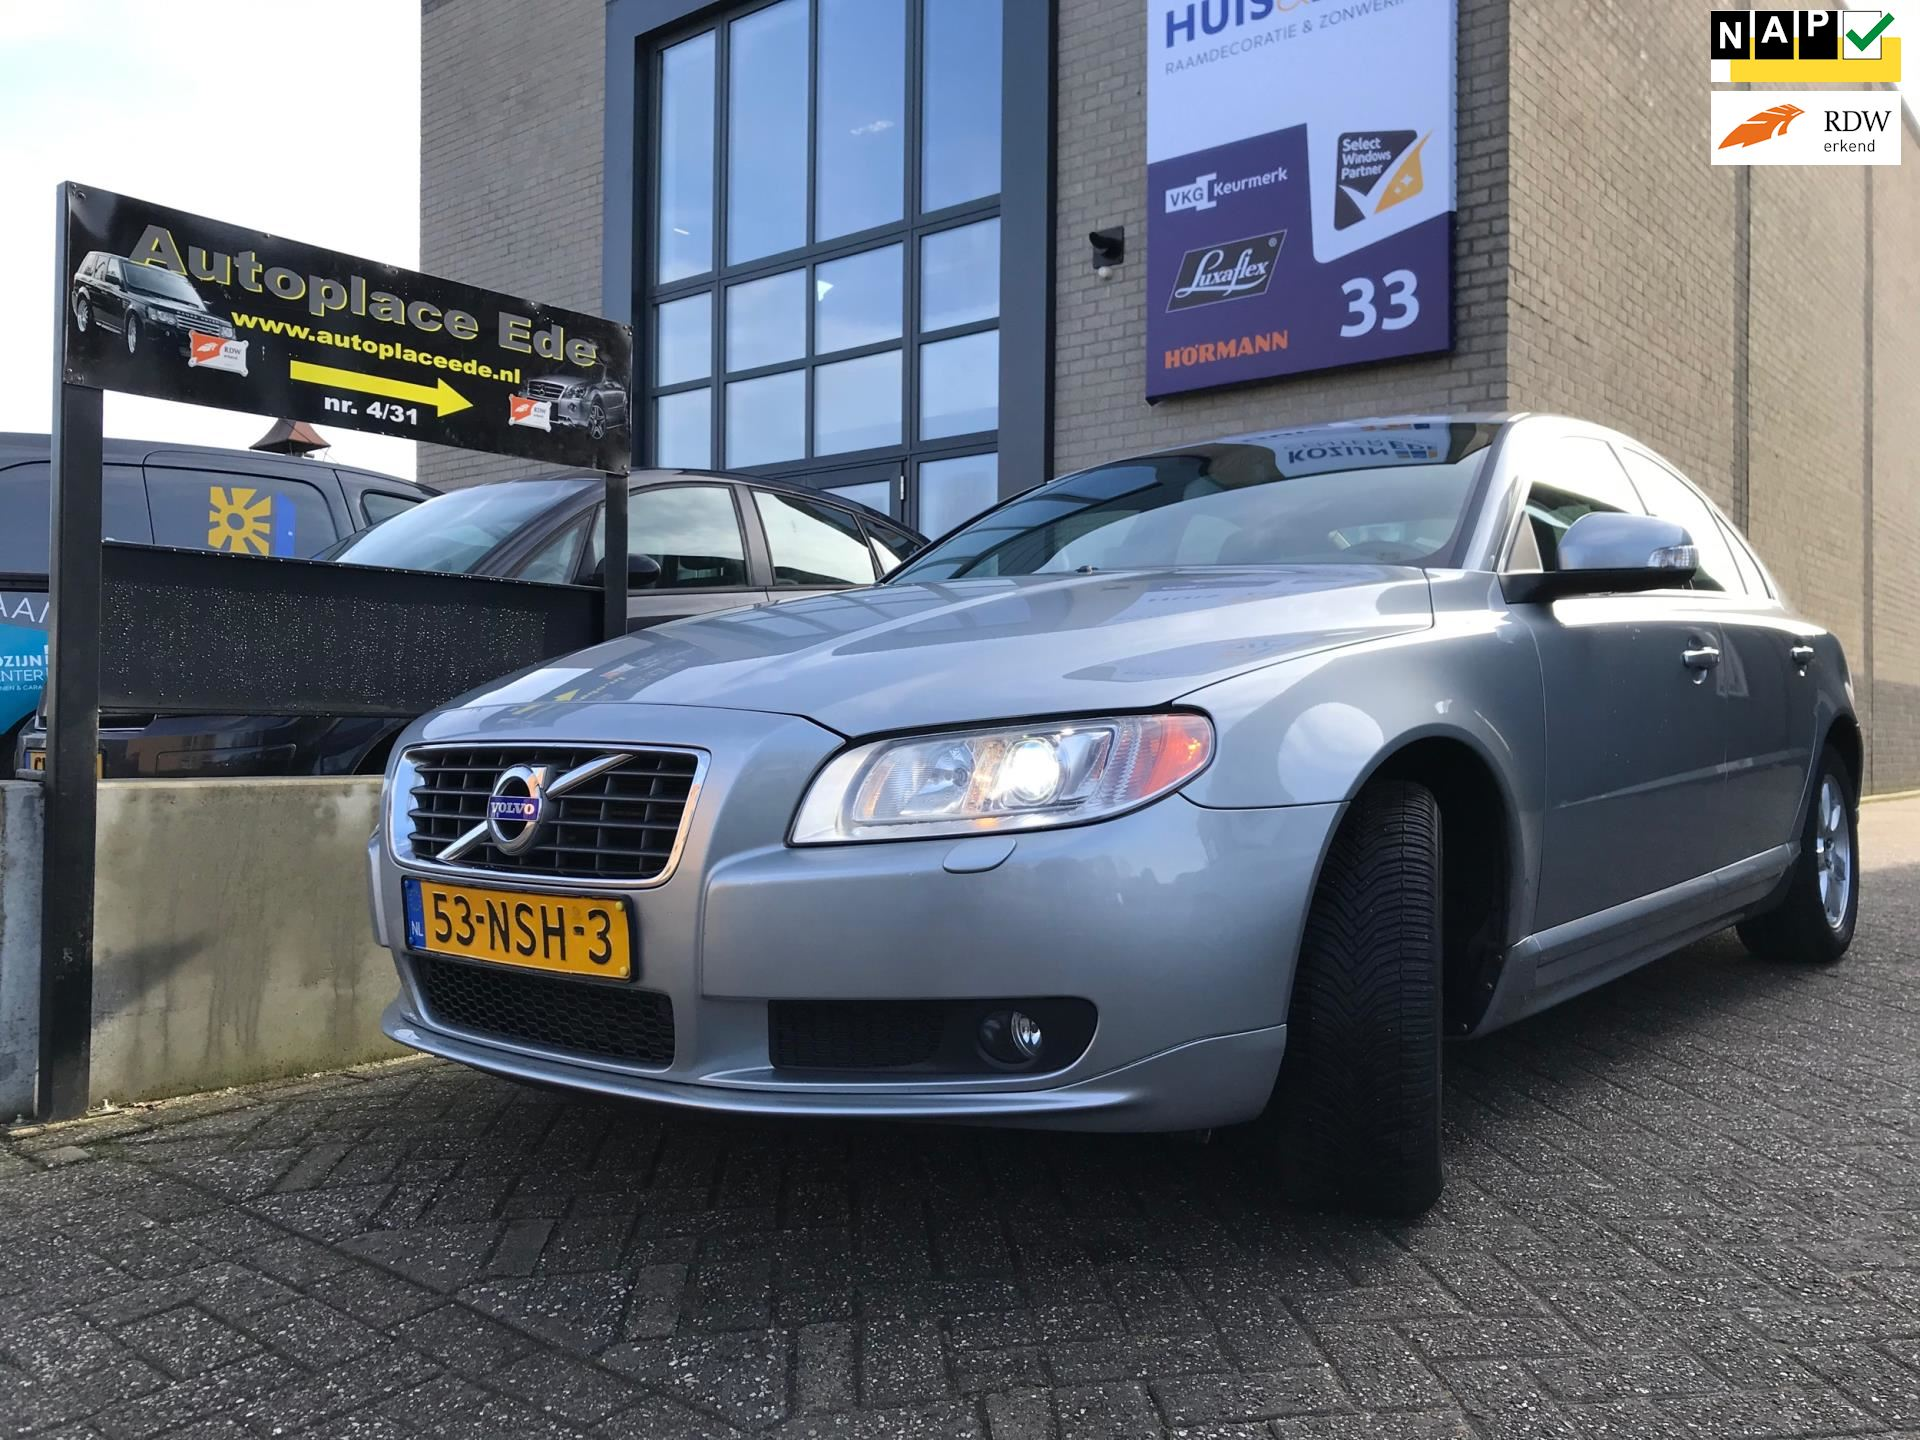 Volvo S80 occasion - autoplaceede